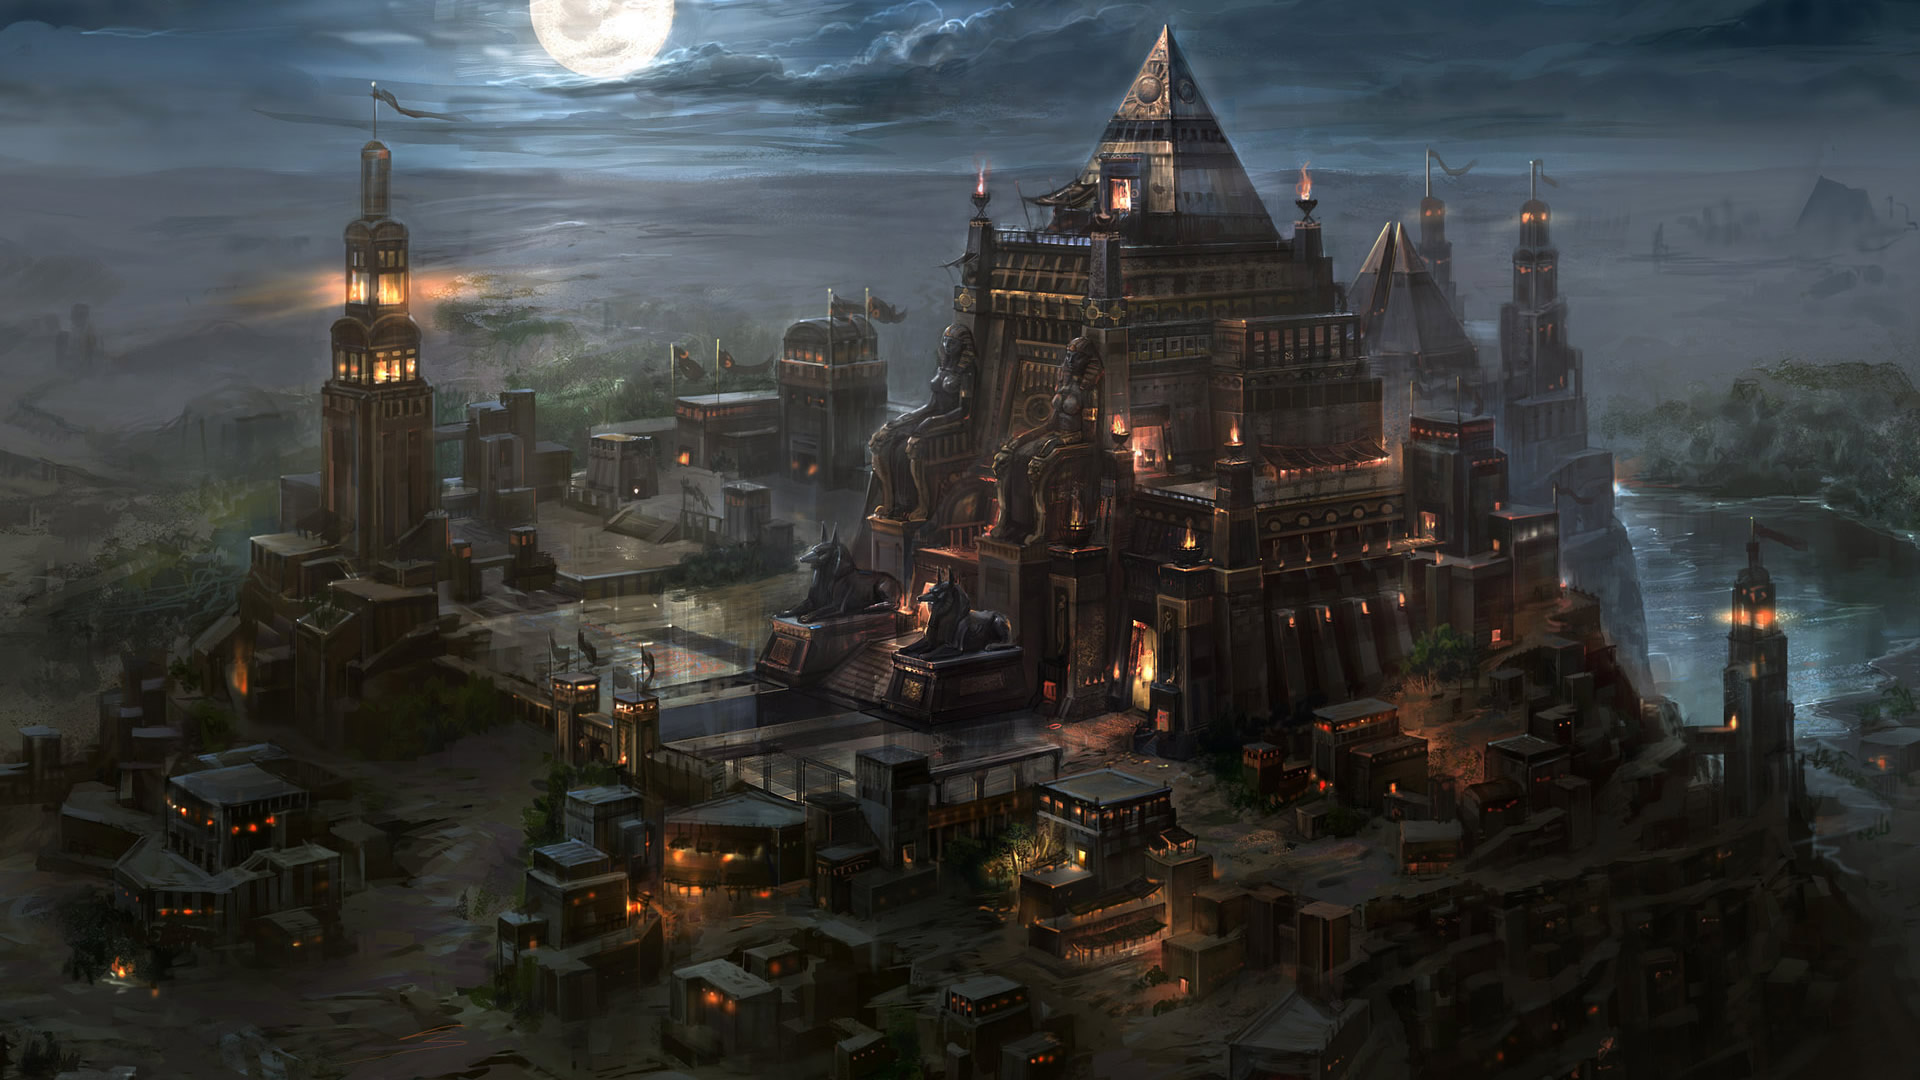 ancient-city-hd-wallpaper-495491.jpg